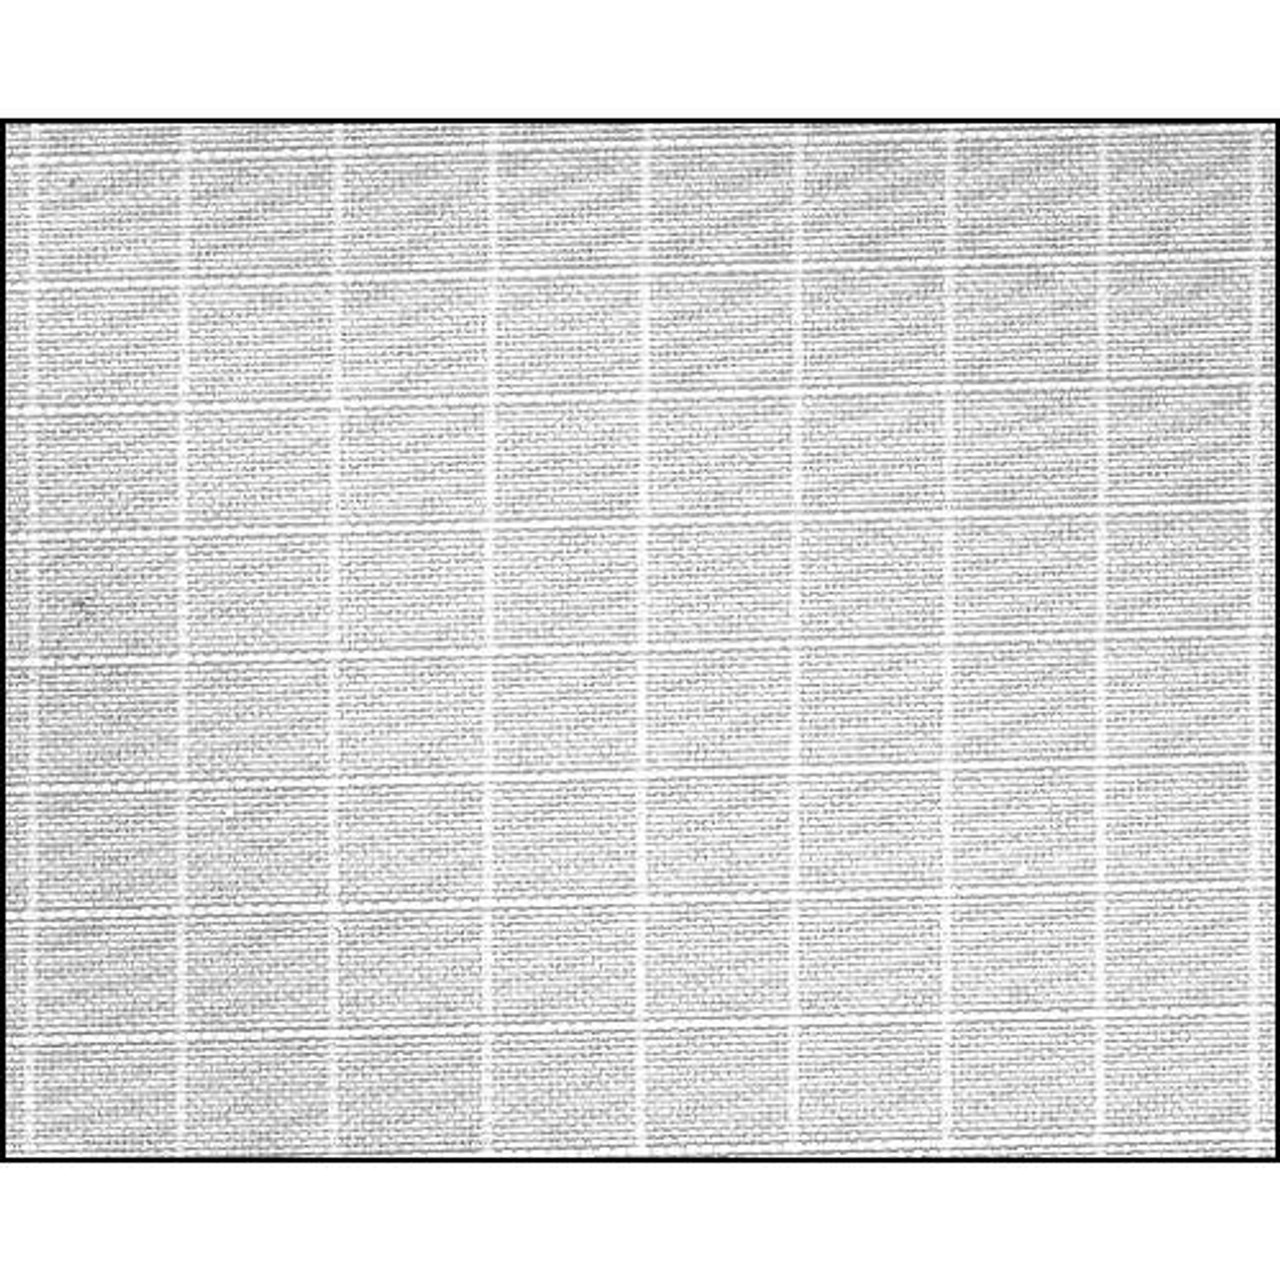 "#3030 Rosco Cinegel Grid Cloth, 20x24"", Gels"